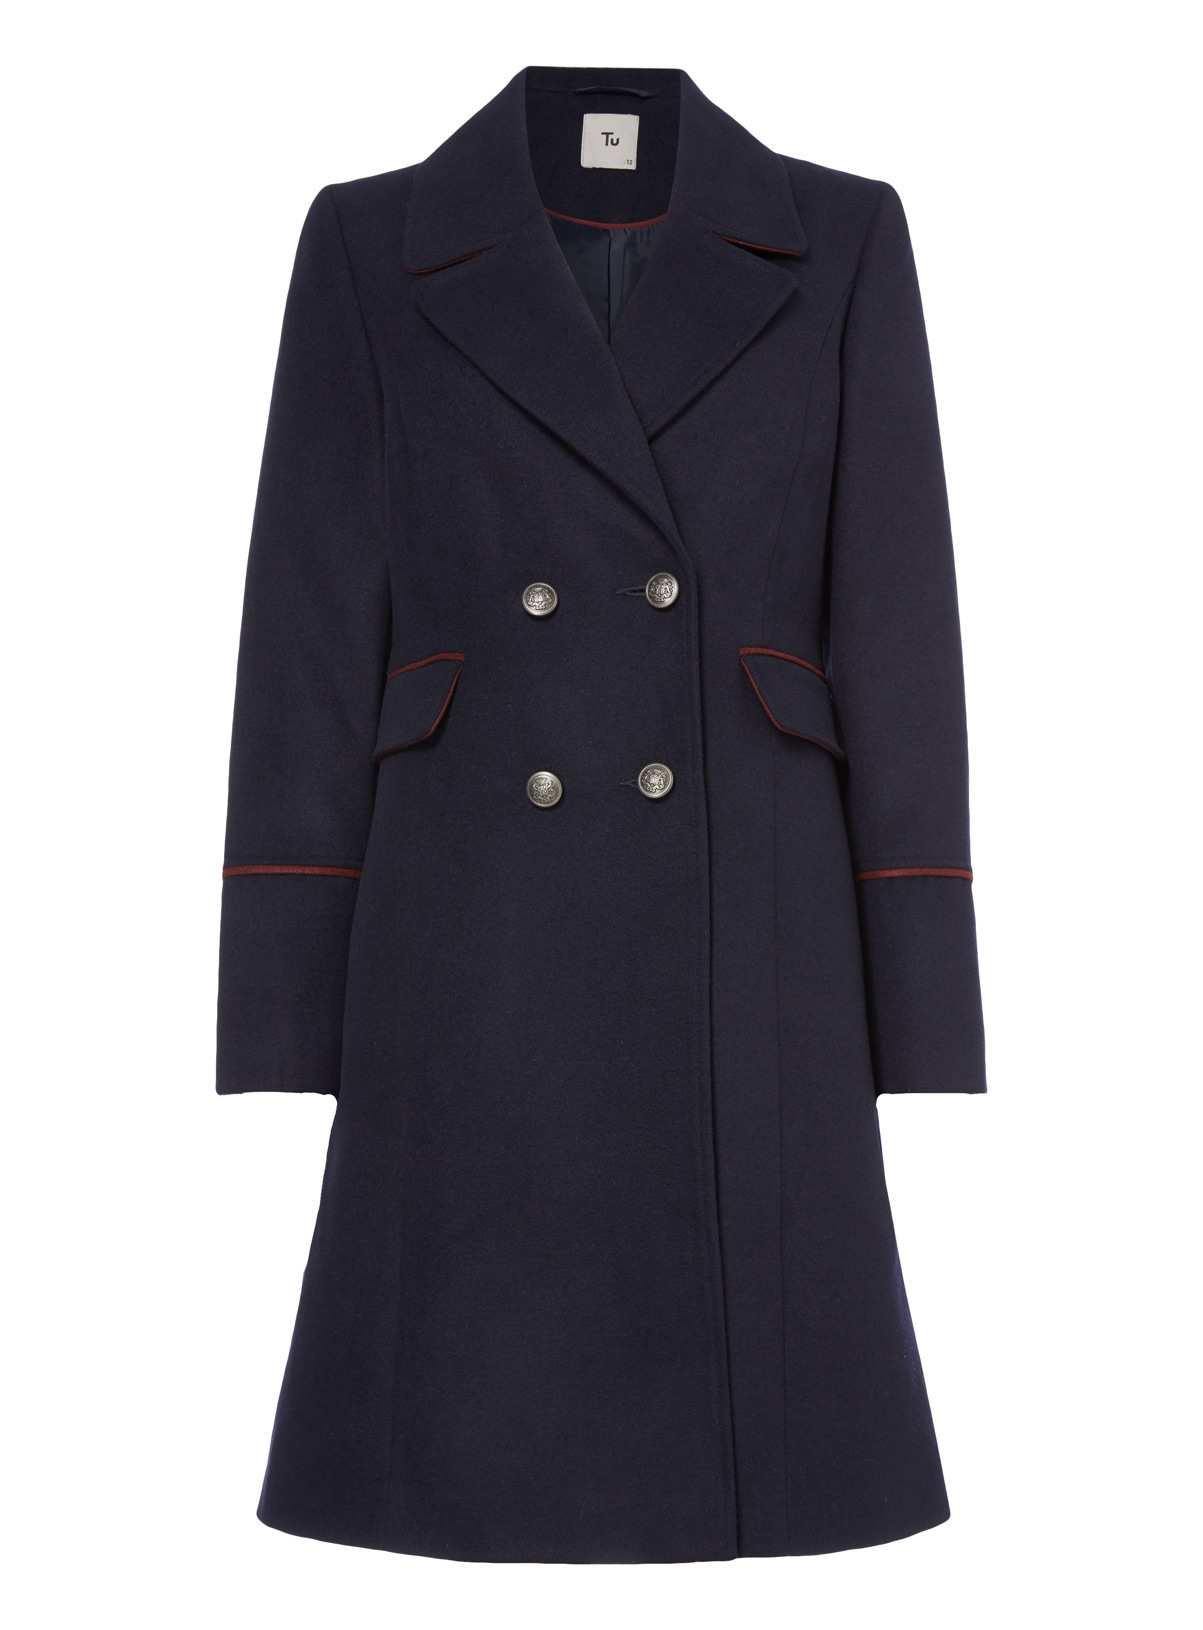 Womens Military Style Coat | Tu clothing